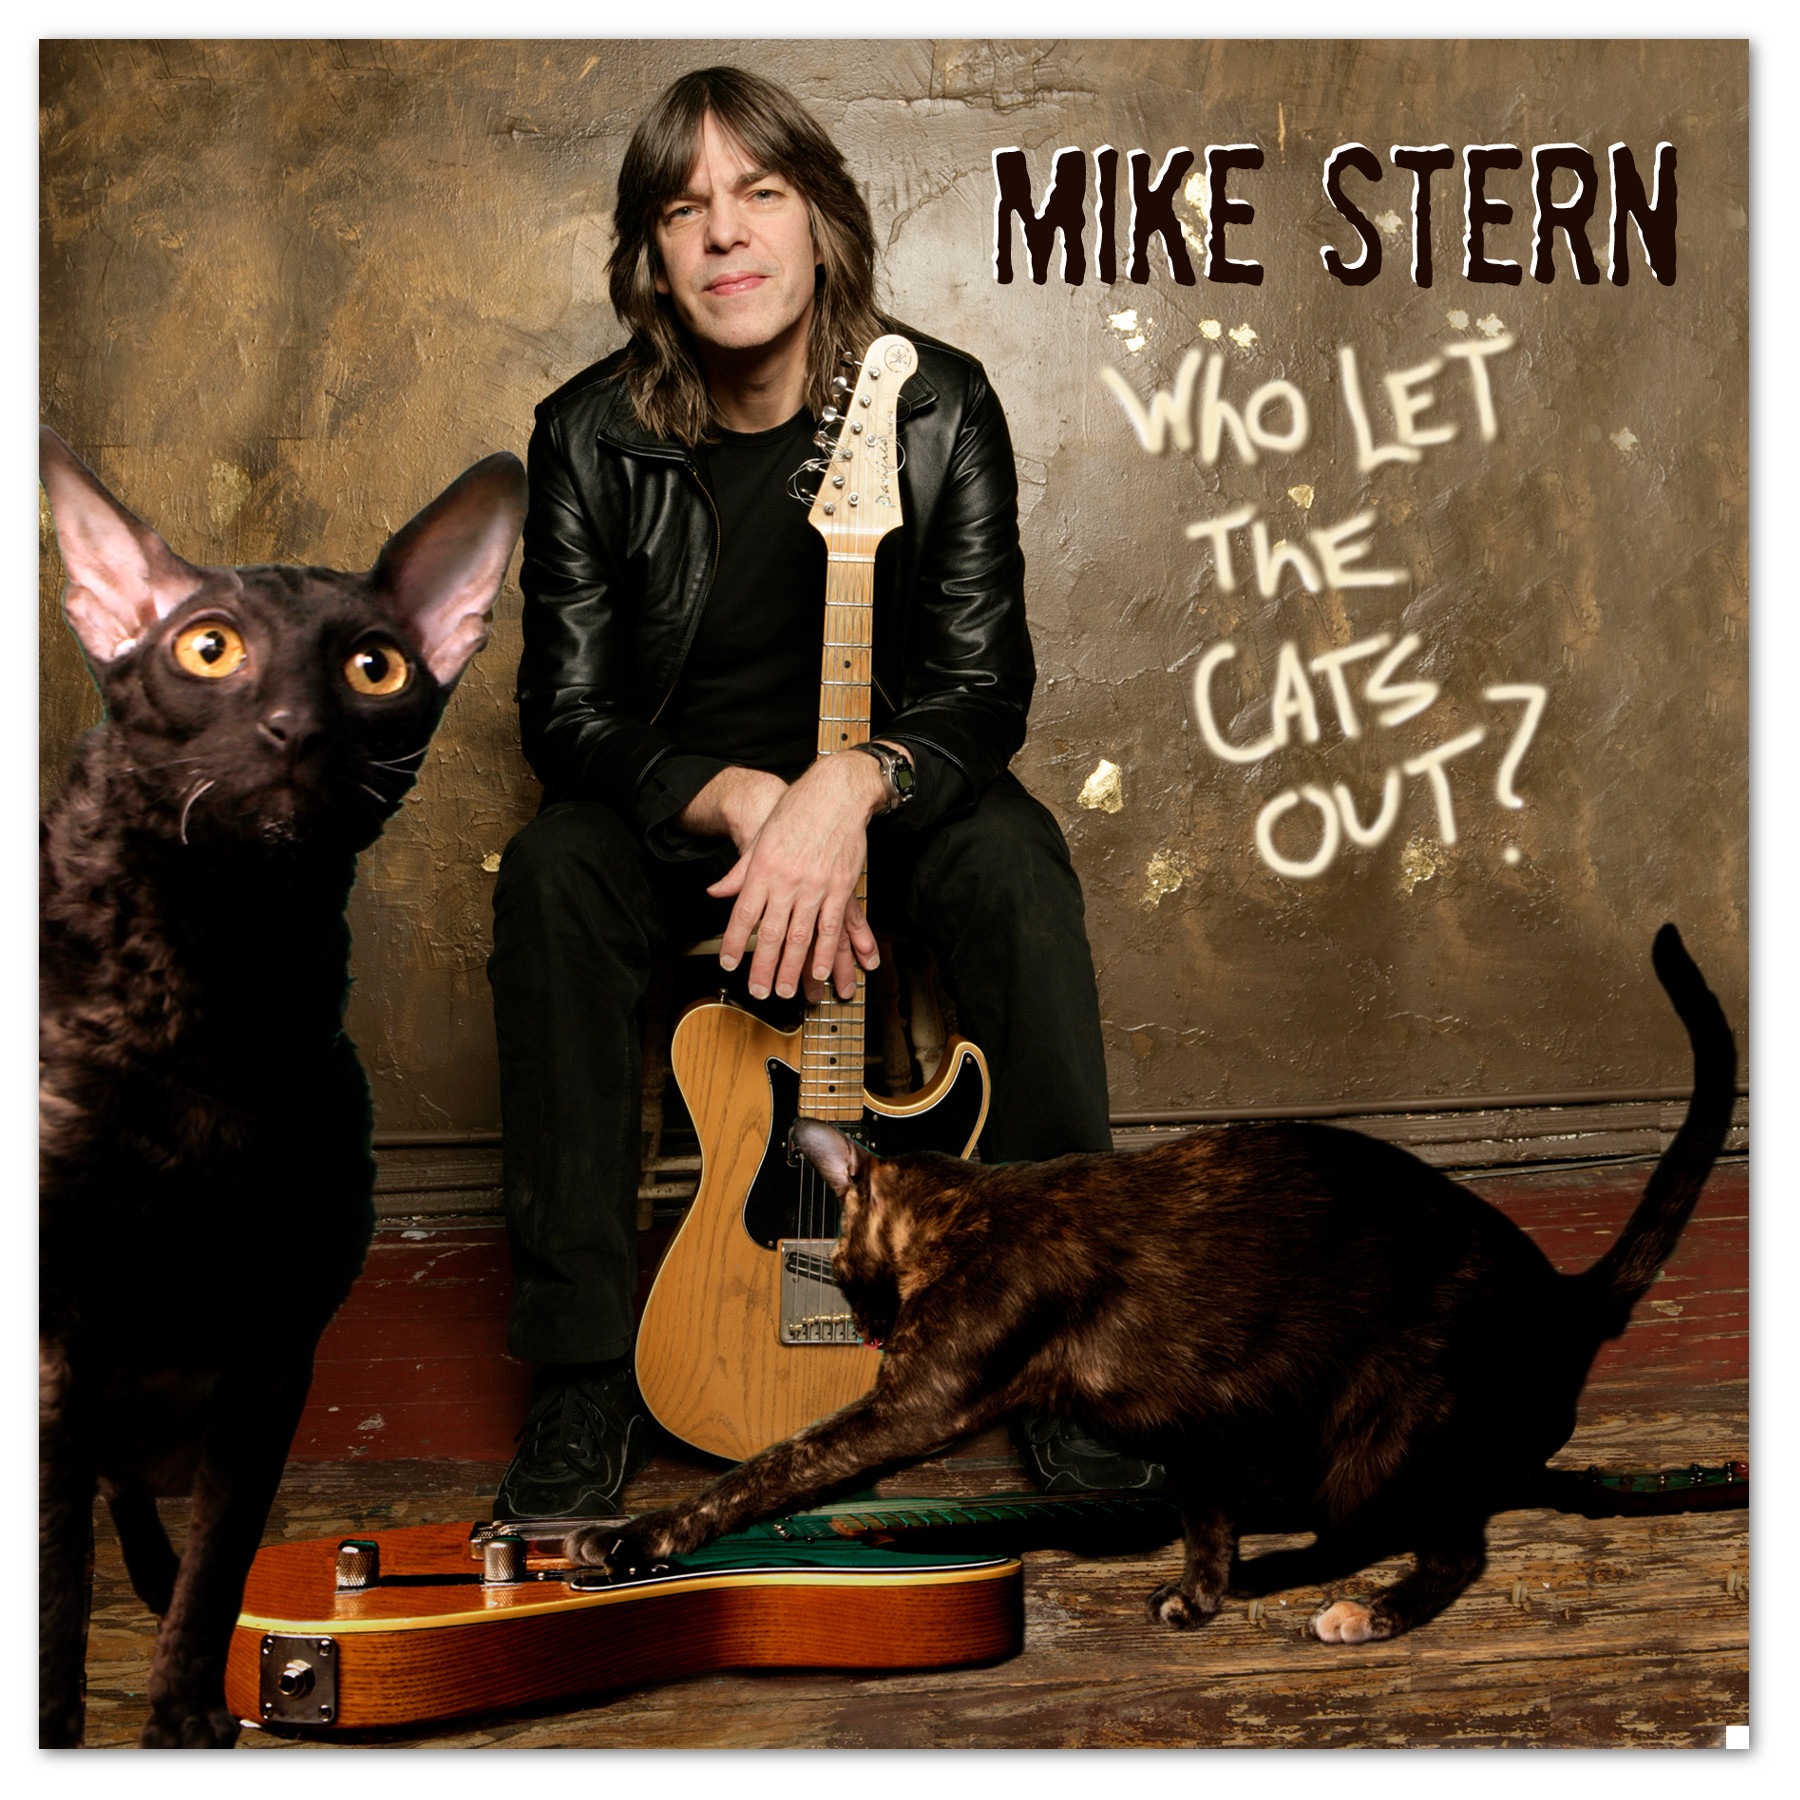 Who let the cats out? - Mike Stern